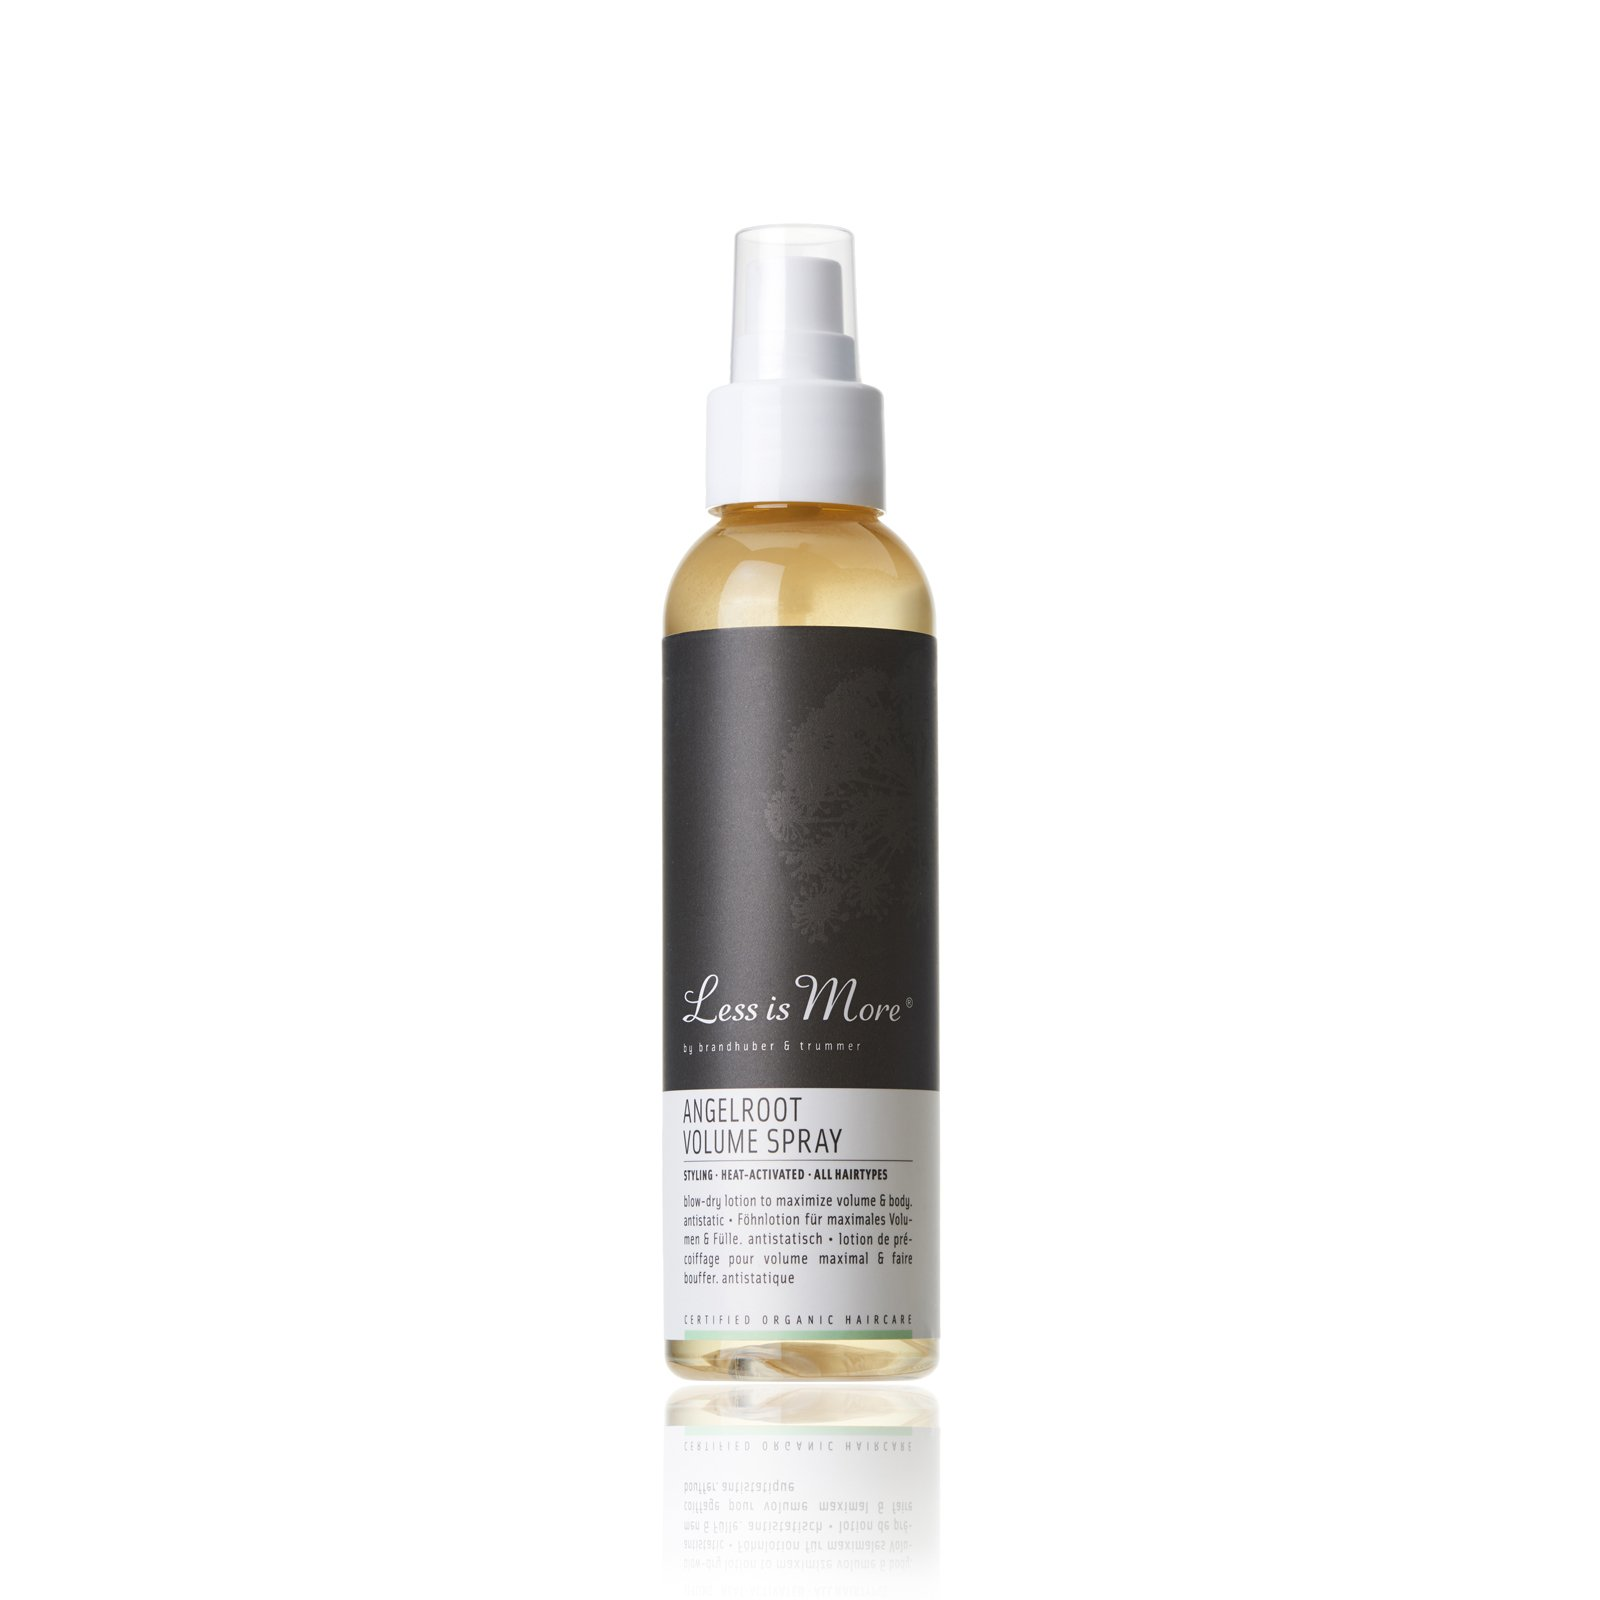 Angelroot Volume Spray from Less Is More